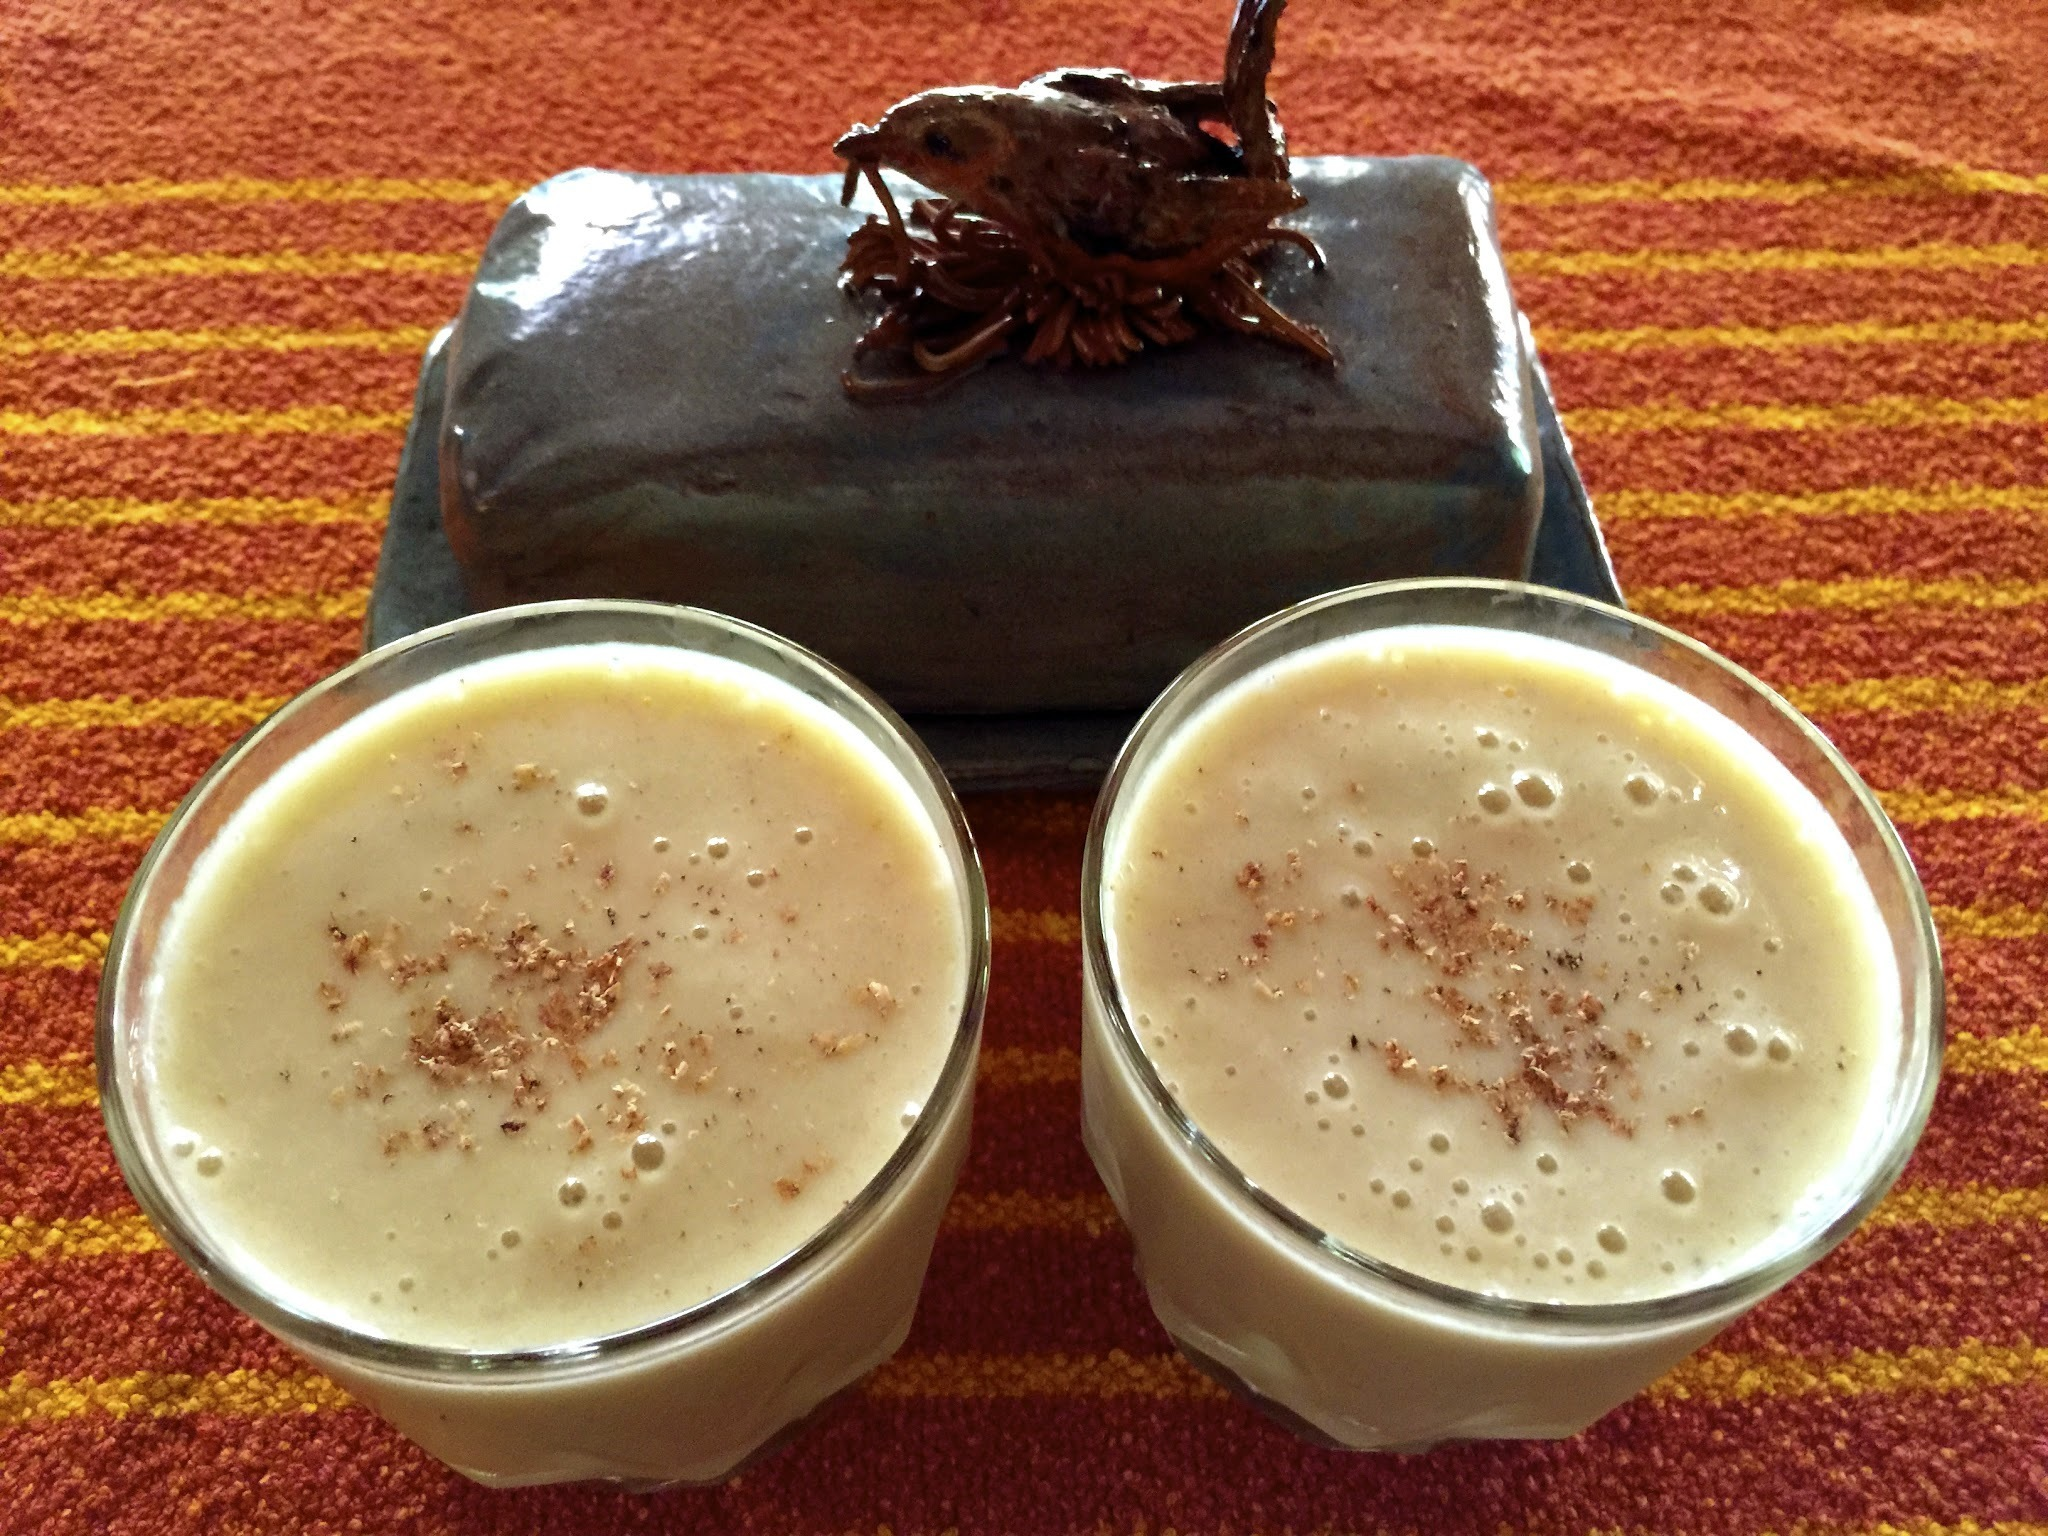 Pineapple Banana Smoothie with Nutmeg